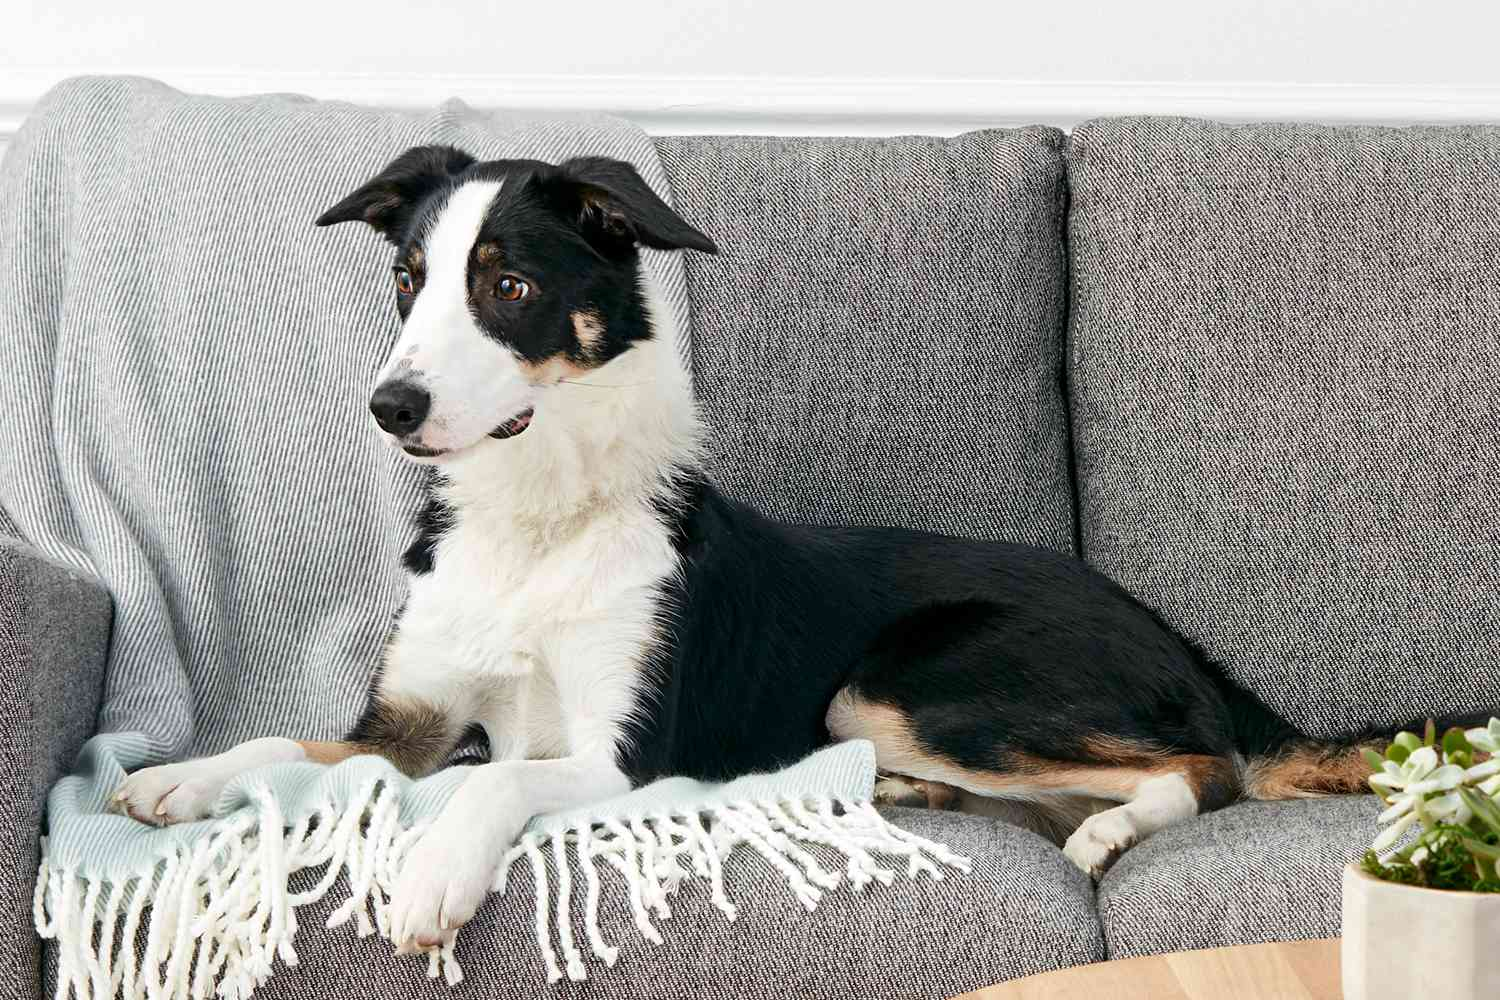 A Border Collie lounging on a sofa